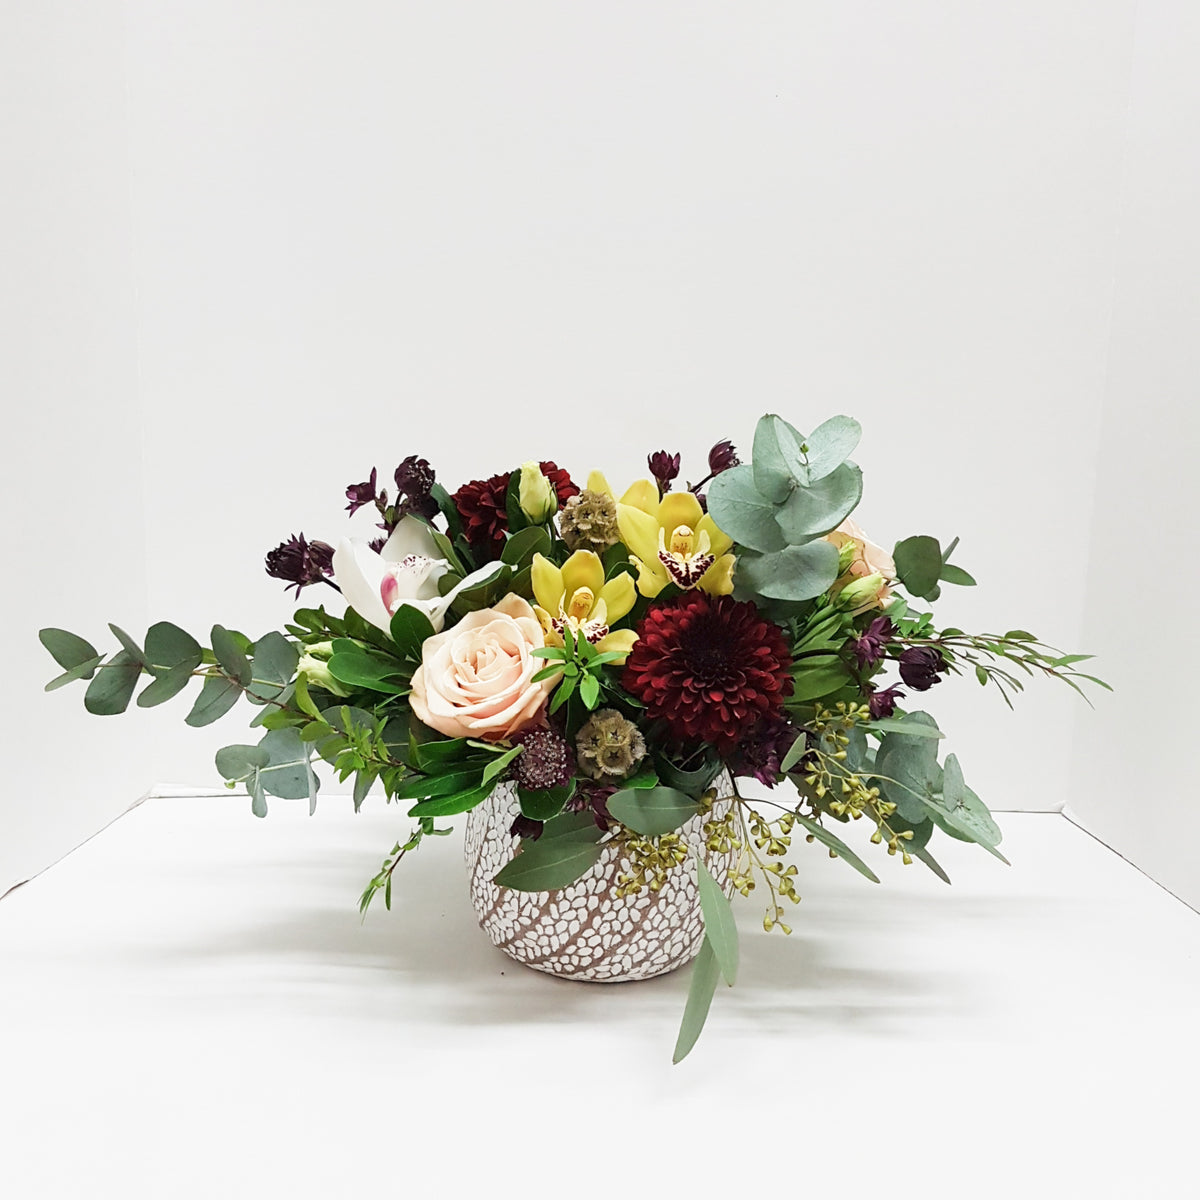 A beautiful mix of fresh flowers including roses, orchid blooms and mixed foliage in a low stylish design.  Color palette in a collection of moody tones.